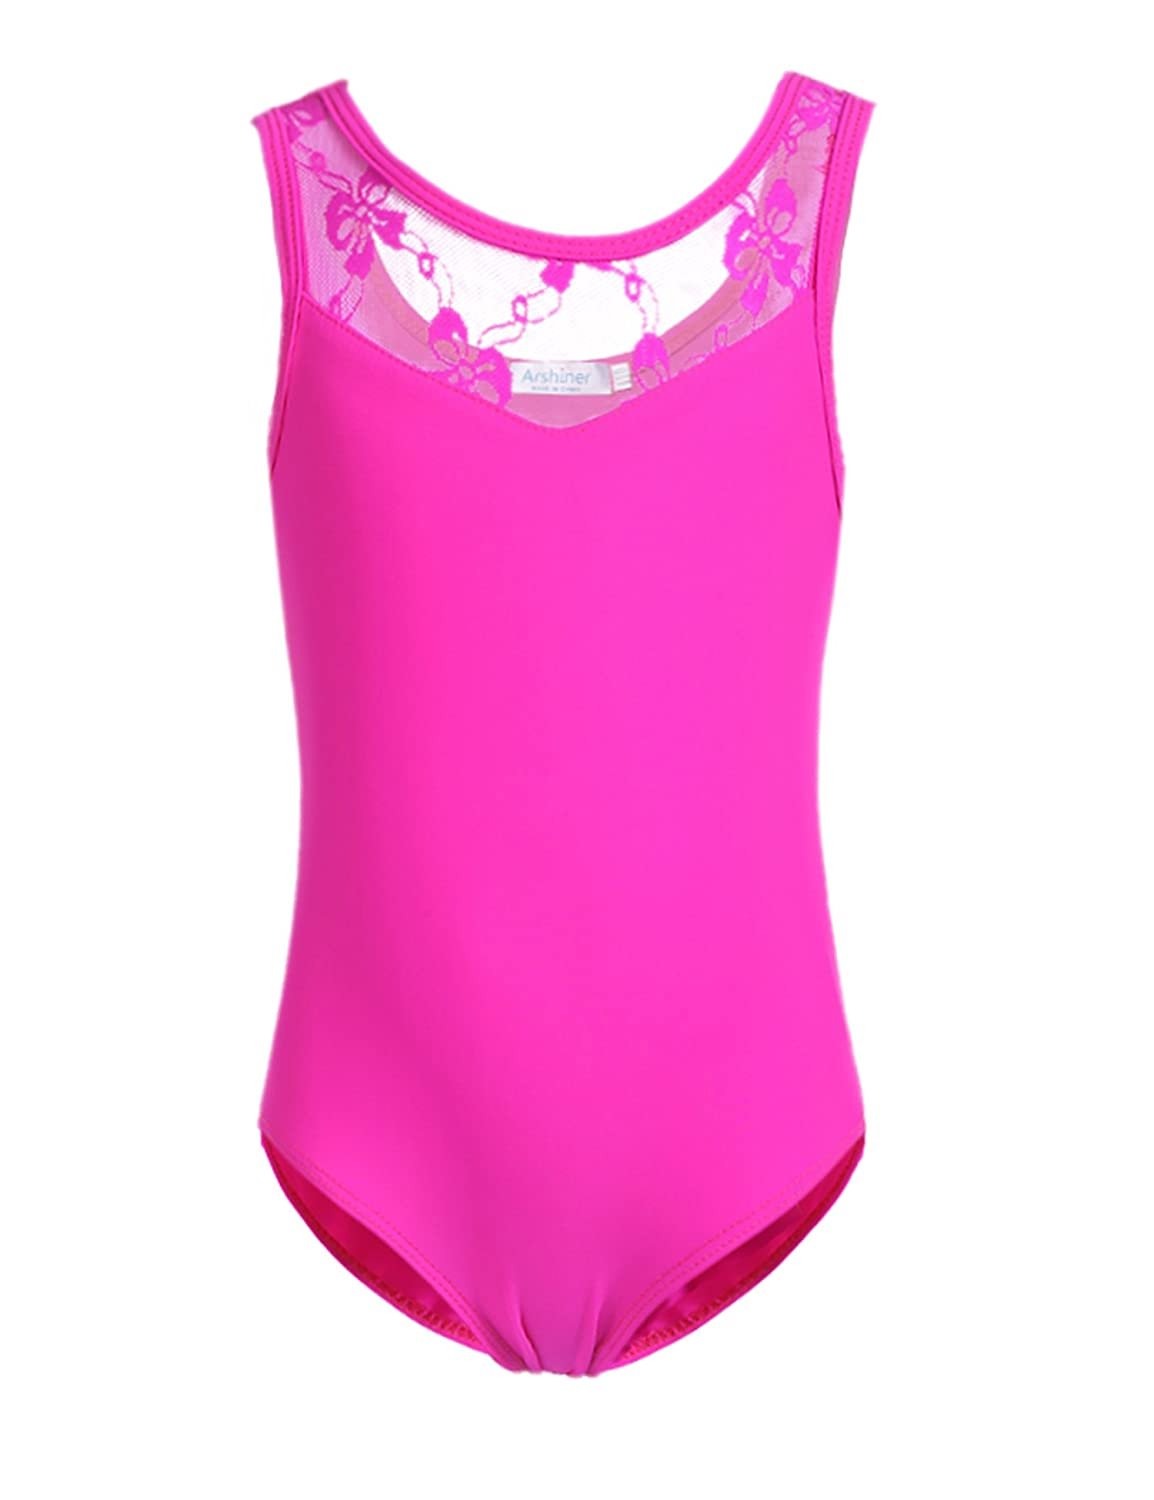 Arshiner Girls' Tank Leotard with Lace Ballet Dance ASS005242